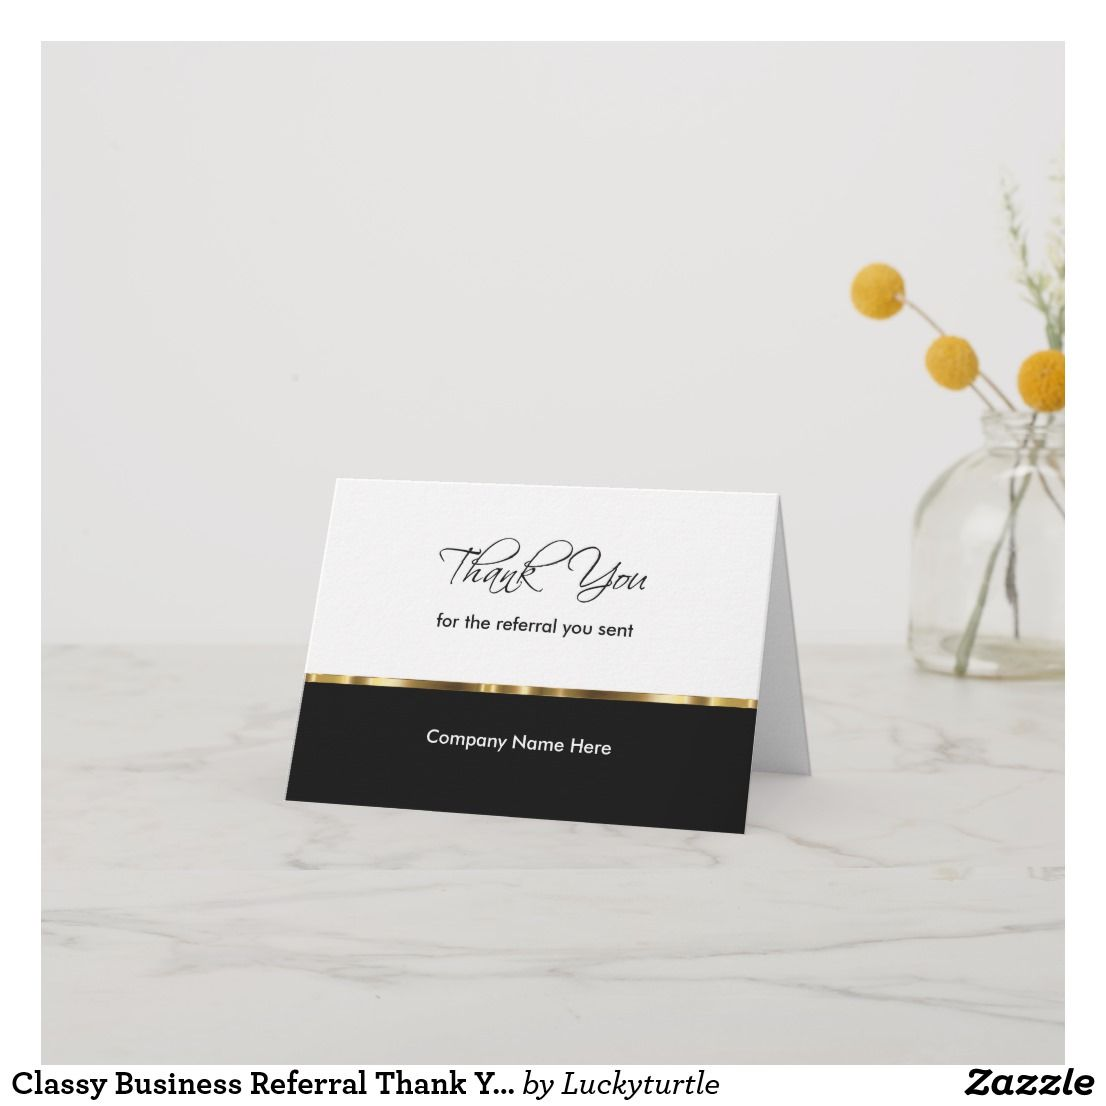 Classy Business Referral Thank You Cards Zazzle Com Thank You Cards Thank You Customers Custom Thank You Cards